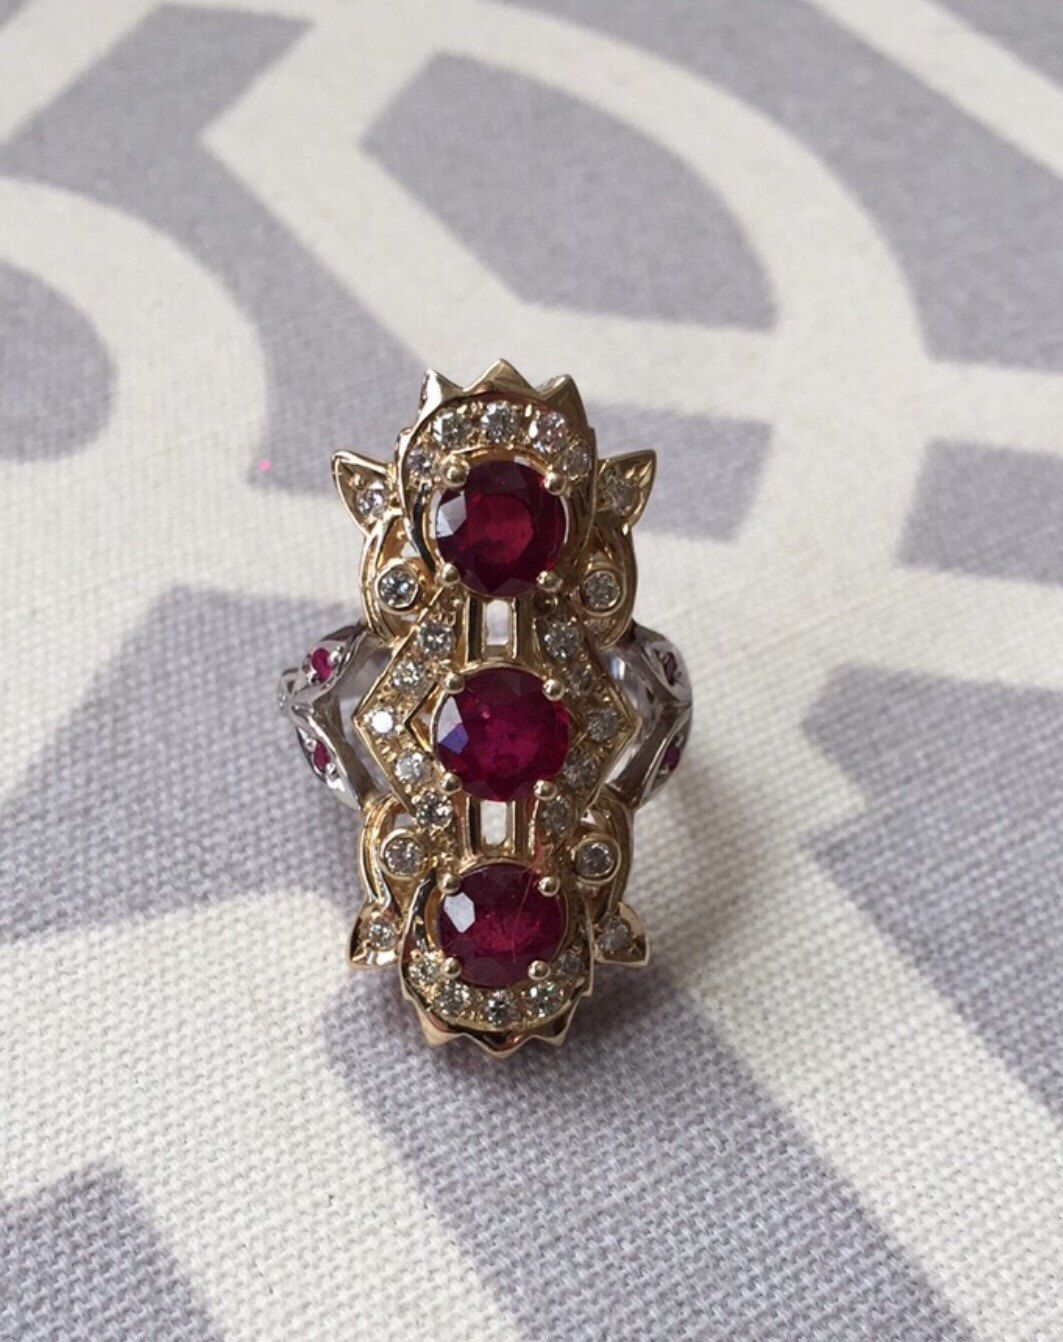 Art Deco Gold, Ruby, and Diamond Coctail Ring  by TheEstateRoom on Etsy https://www.etsy.com/listing/215132399/art-deco-gold-ruby-and-diamond-coctail